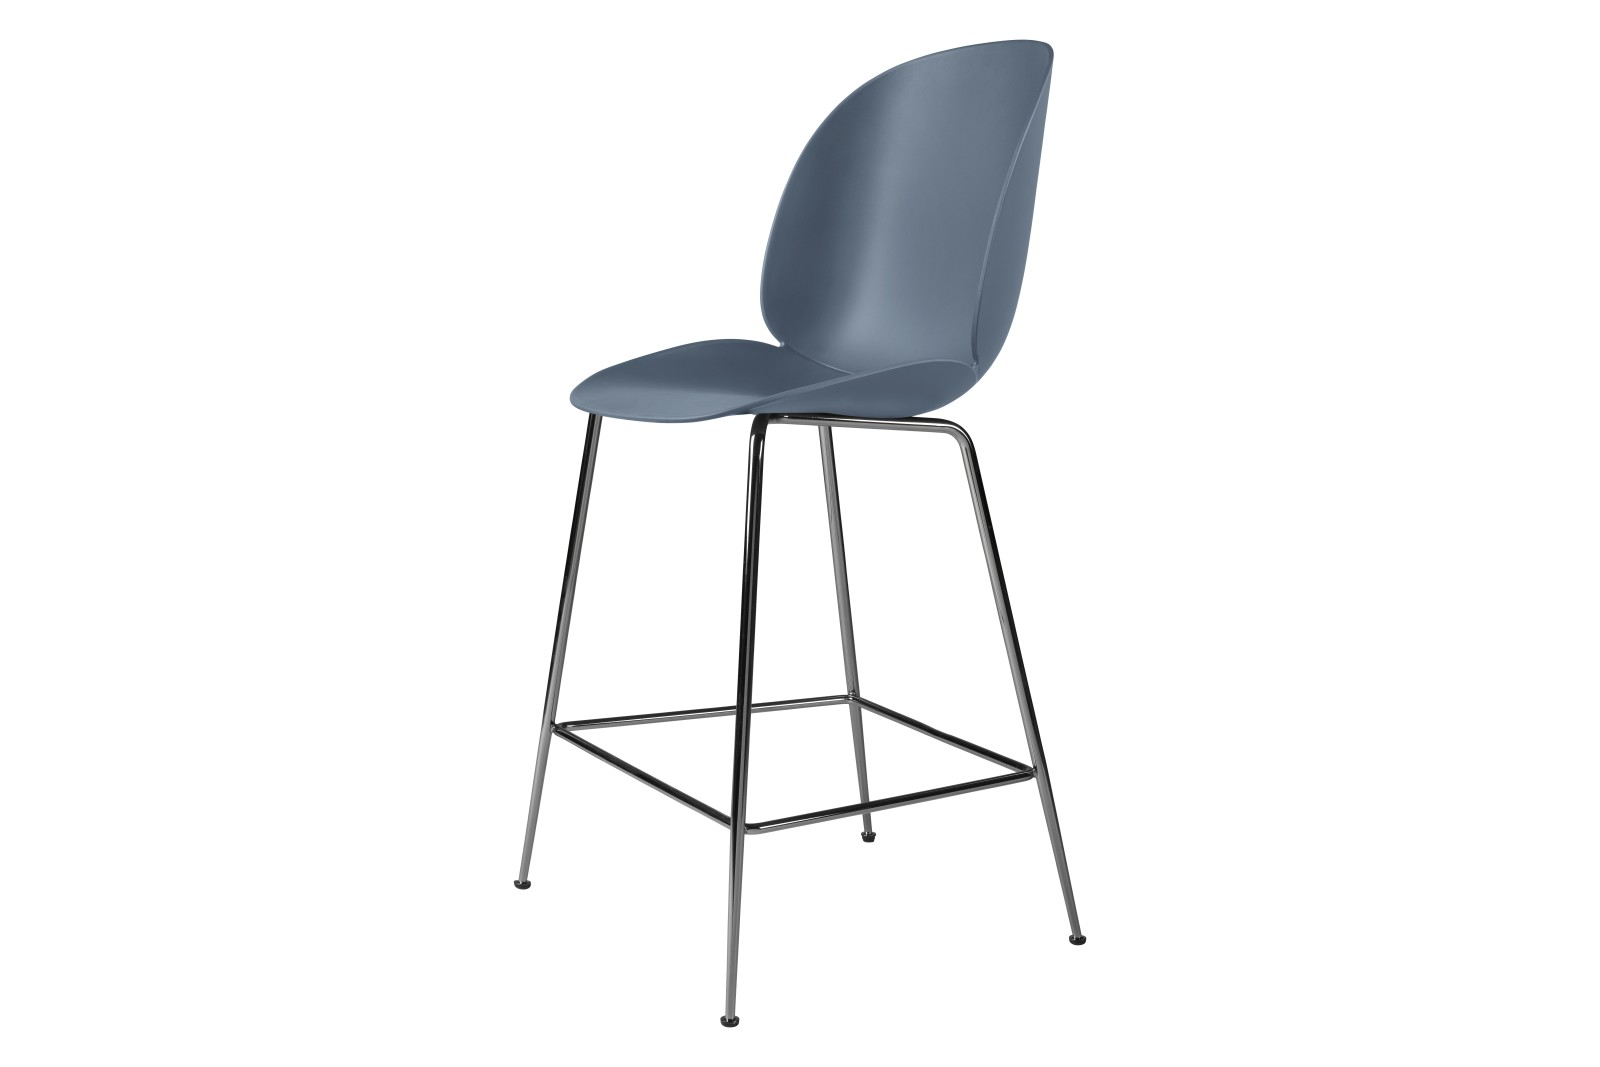 Beetle Counter Chair - Un-upholstered Conic base (Black Chrome Base, Smoke Blue, Plastic Glides)